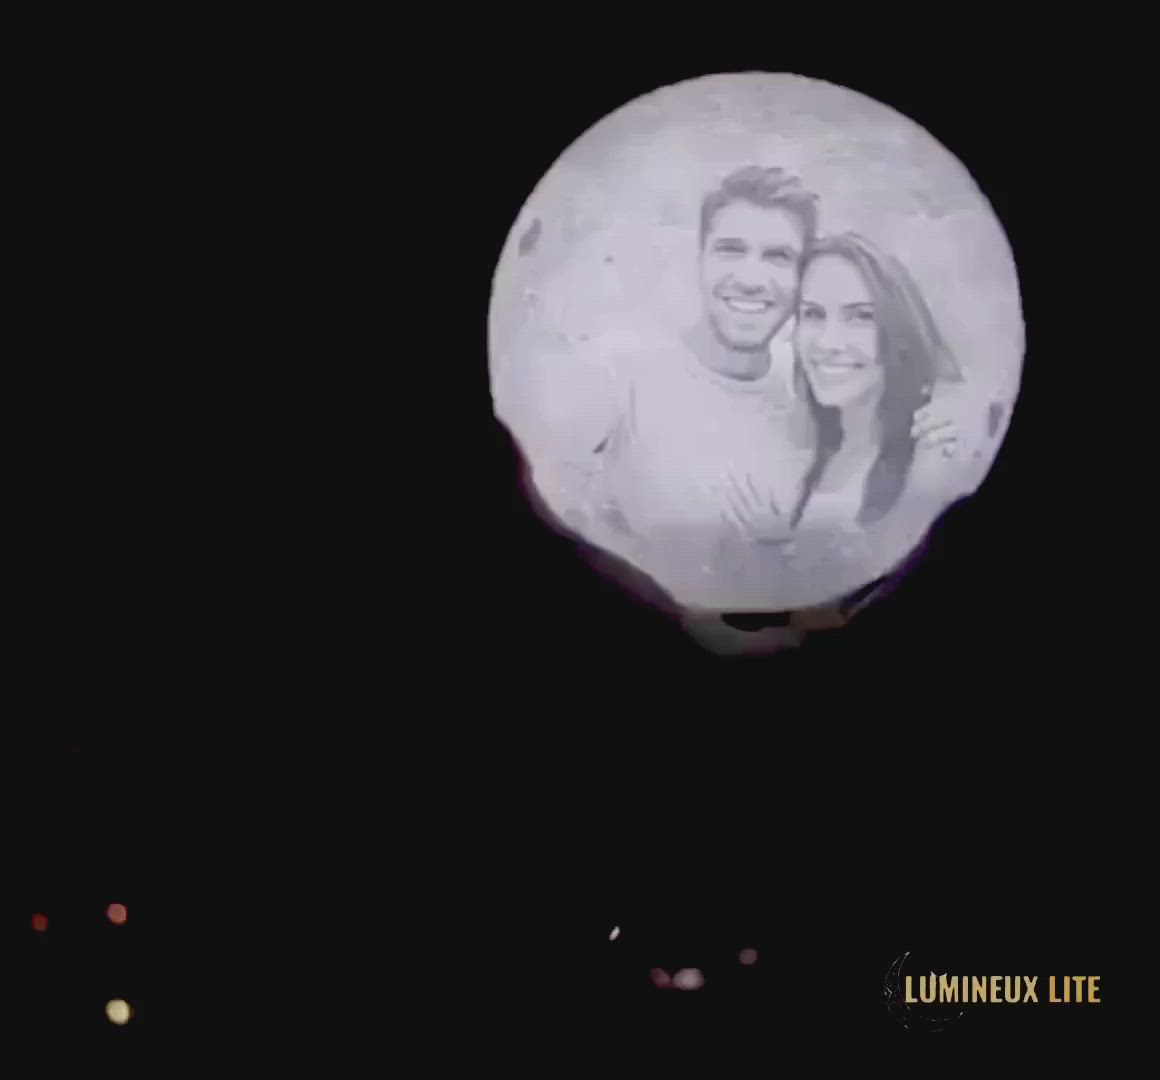 Personalized 3d Moon Lamp Video In 2020 Lamp Gifts Crafts